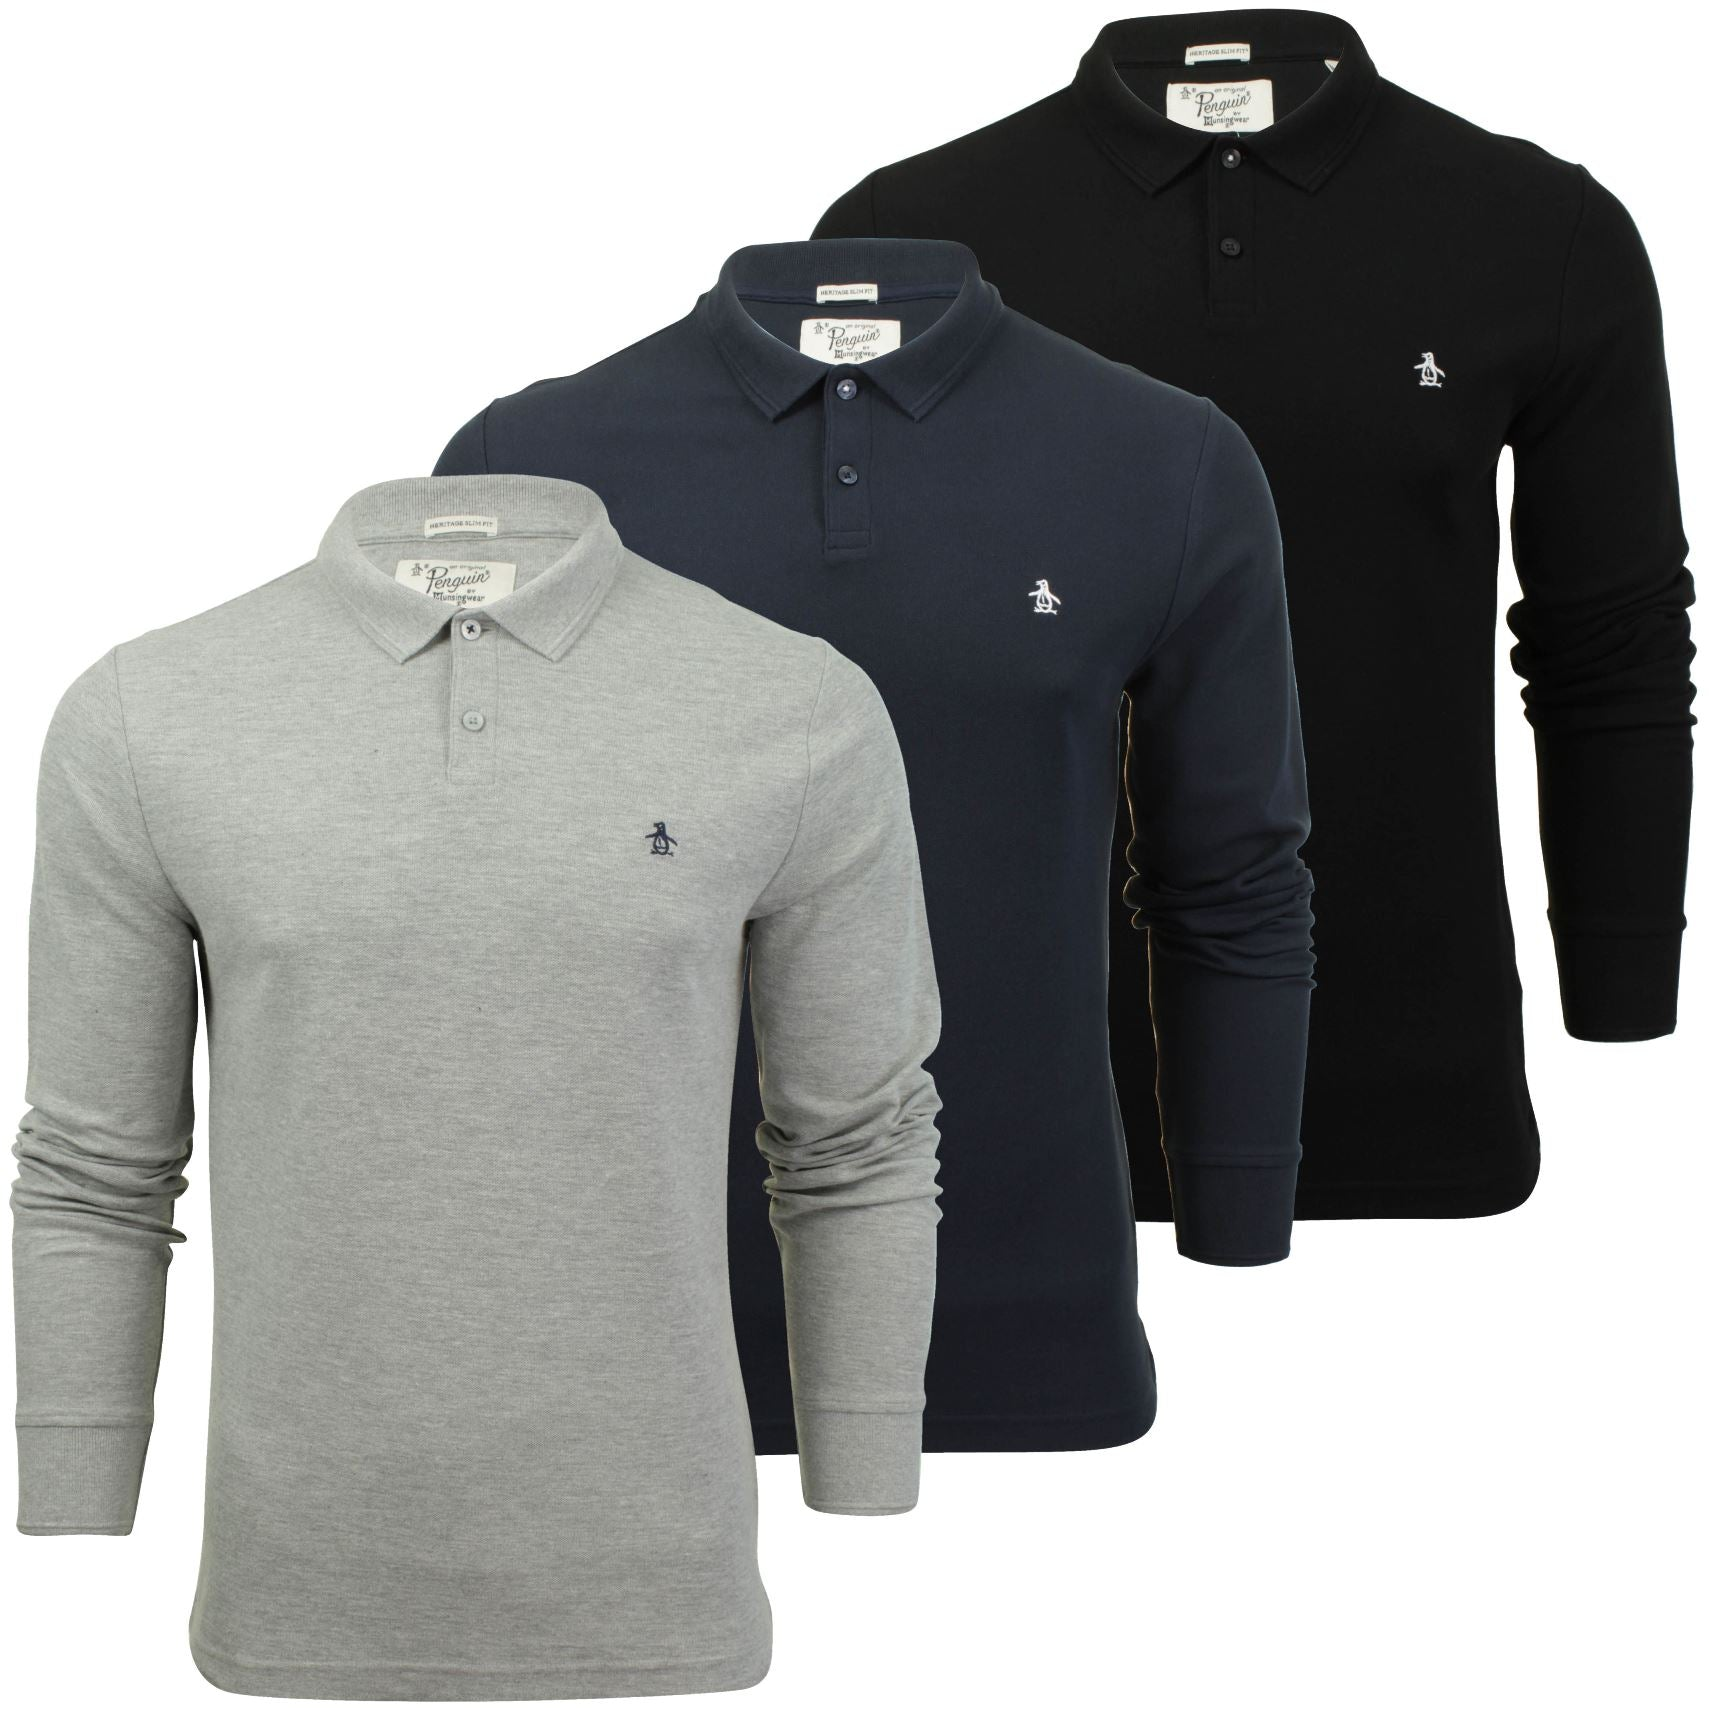 Mens Polo T-Shirt by Original Penguin 'Winston' Long Sleeved-Main Image